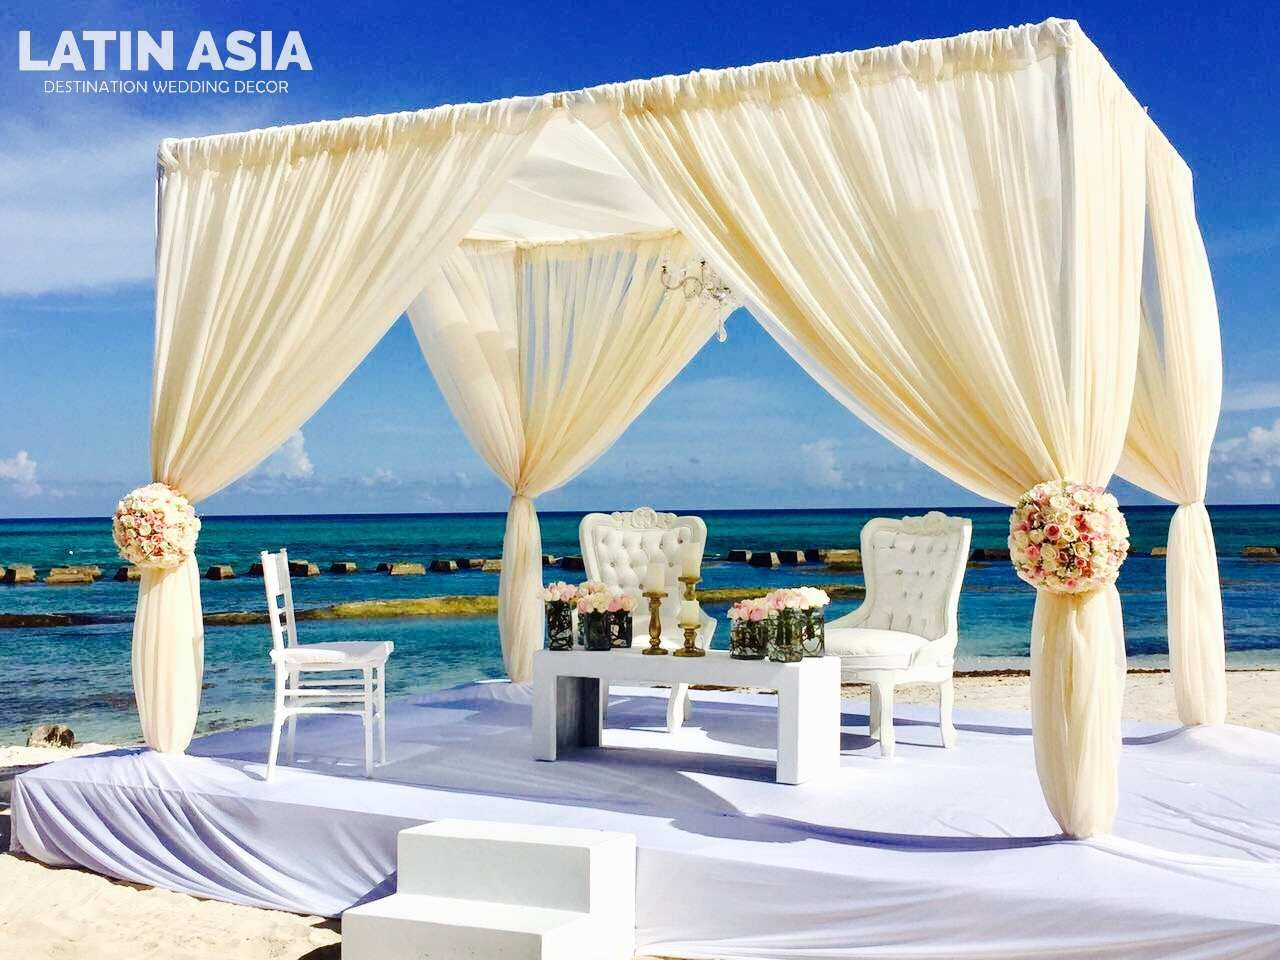 Beach venue for a hindu wedding in Mexico by latin asia one stop solution